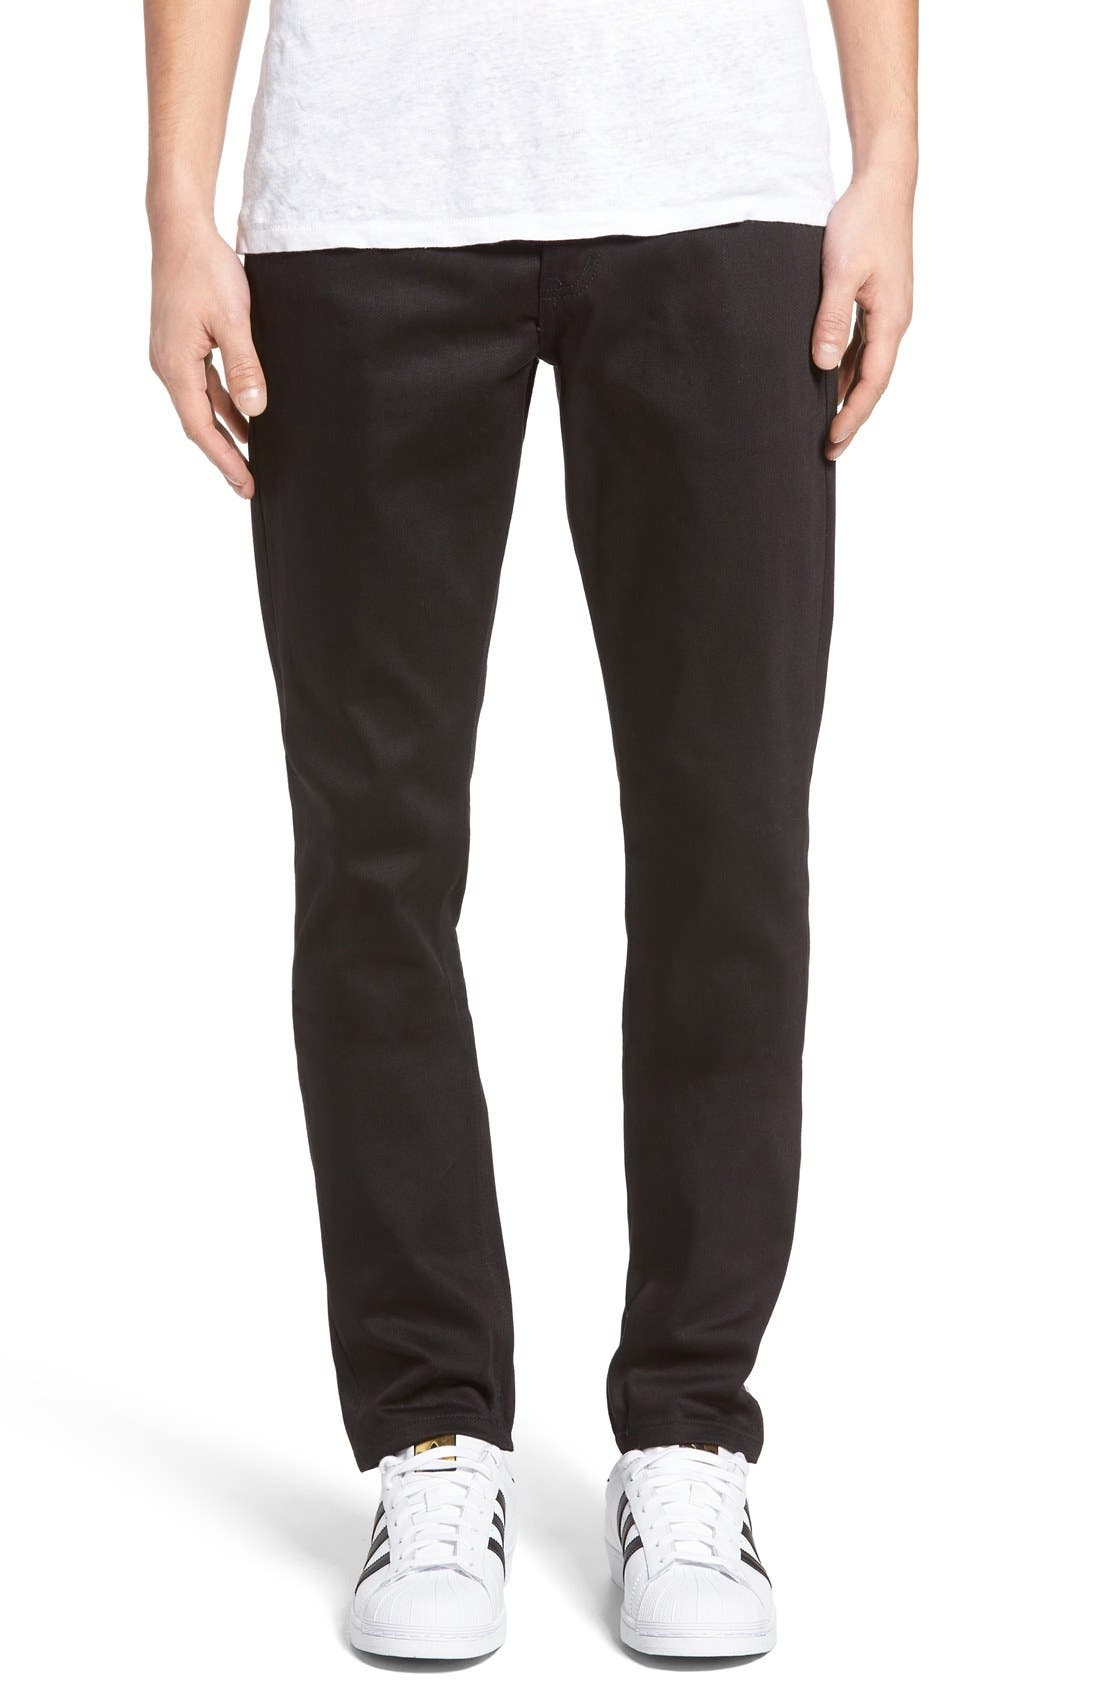 UB455 Selvedge Skinny Fit Jeans,                             Main thumbnail 1, color,                             001